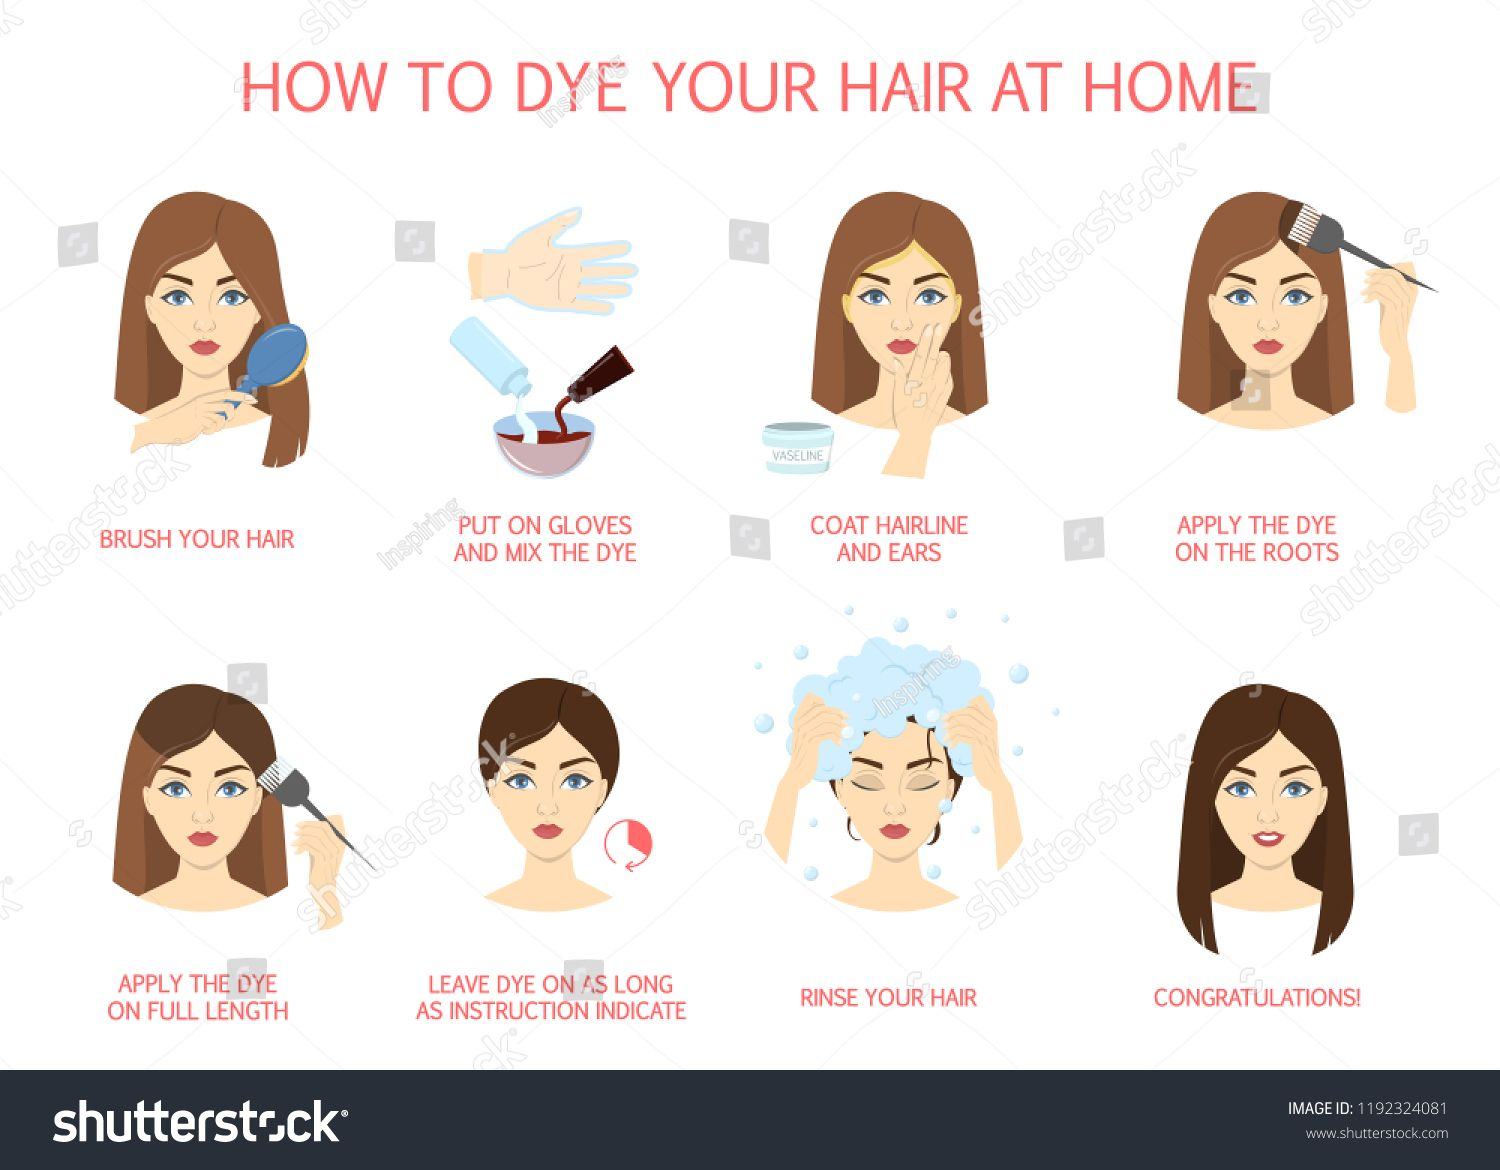 How to dye your hair at home guide. Step-by-step instruction for